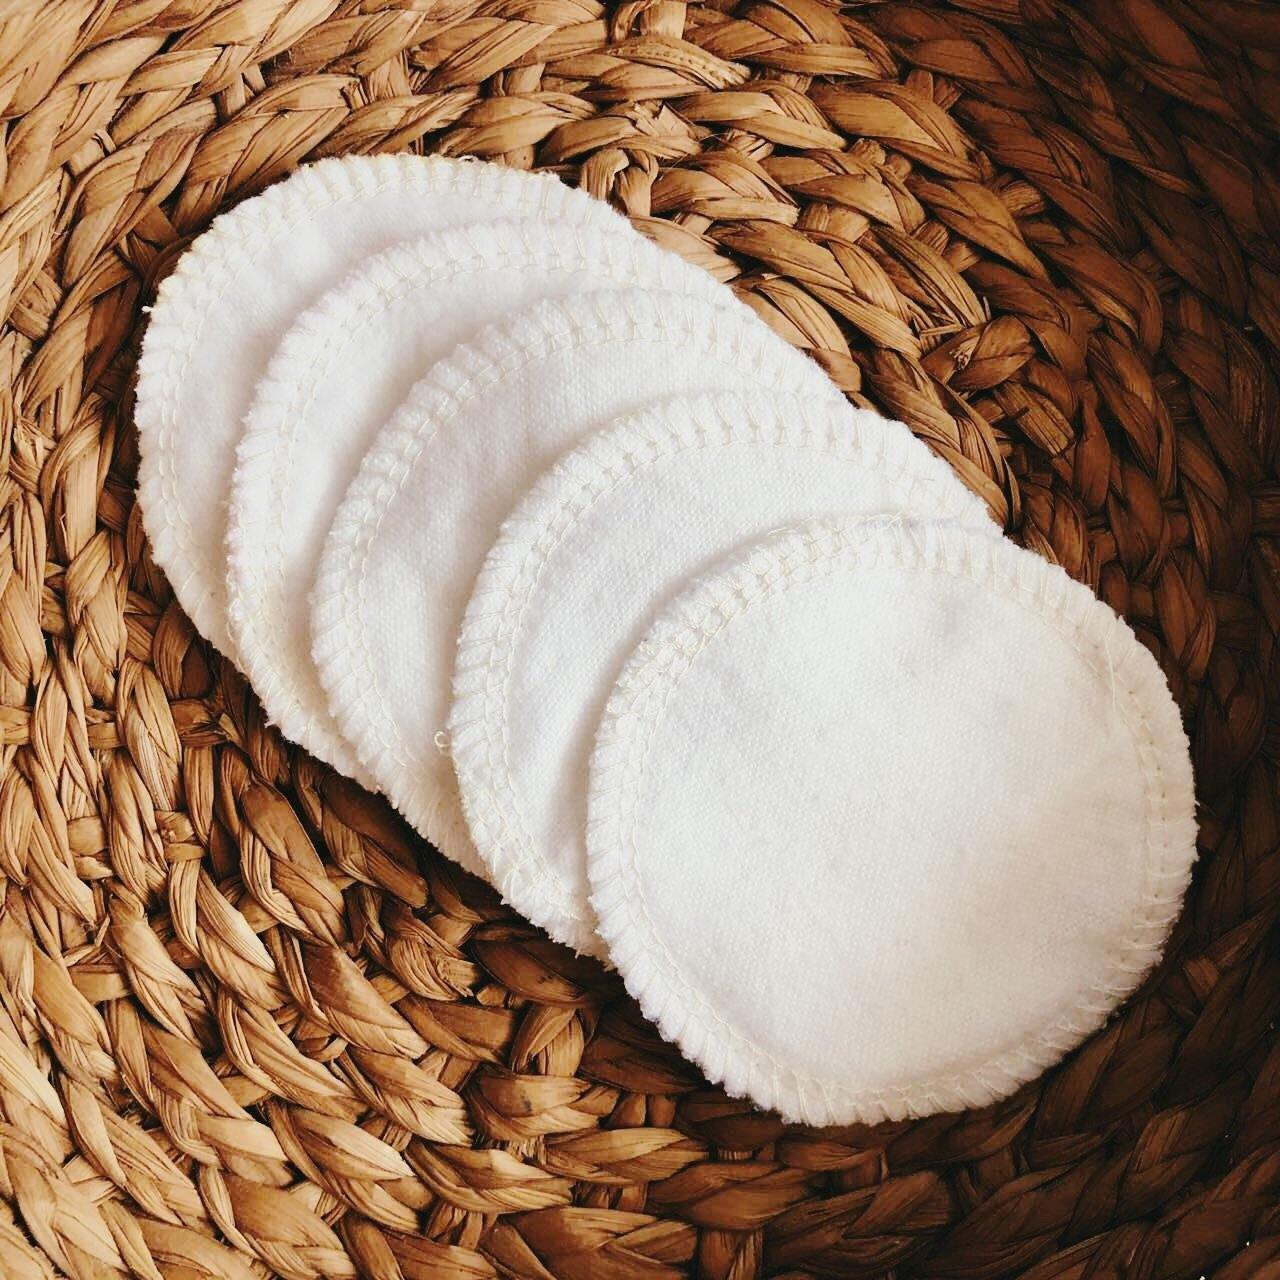 Cotton Rounds (Set of 5)